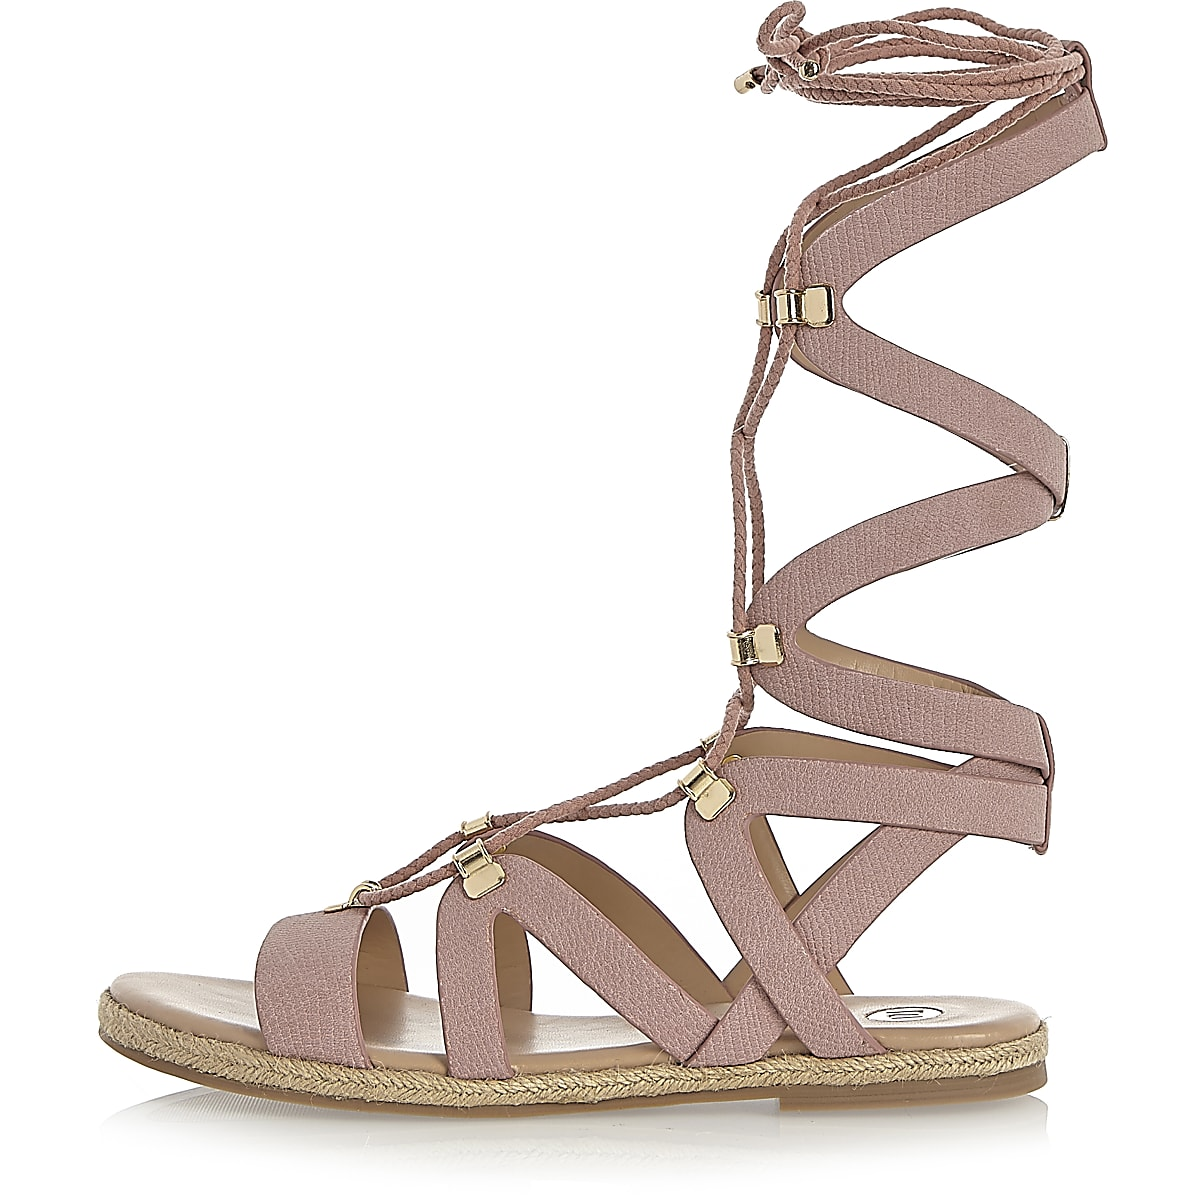 Pink lace-up gladiator sandals